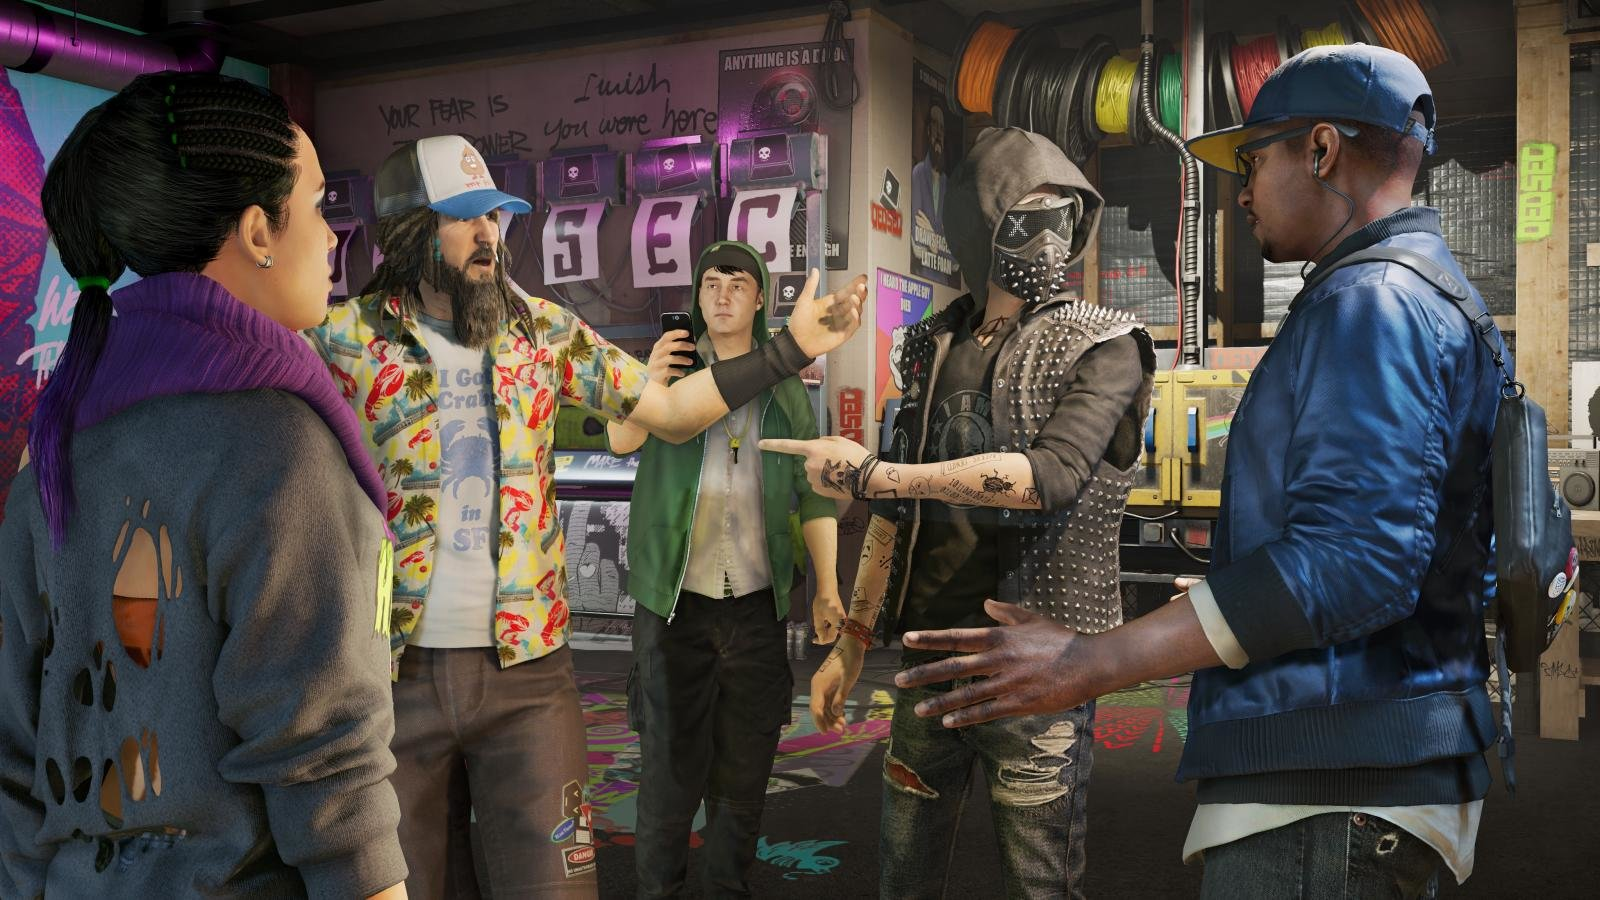 Free Watch Dogs 2 High Quality Wallpaper Id366064 For Hd 1600x900